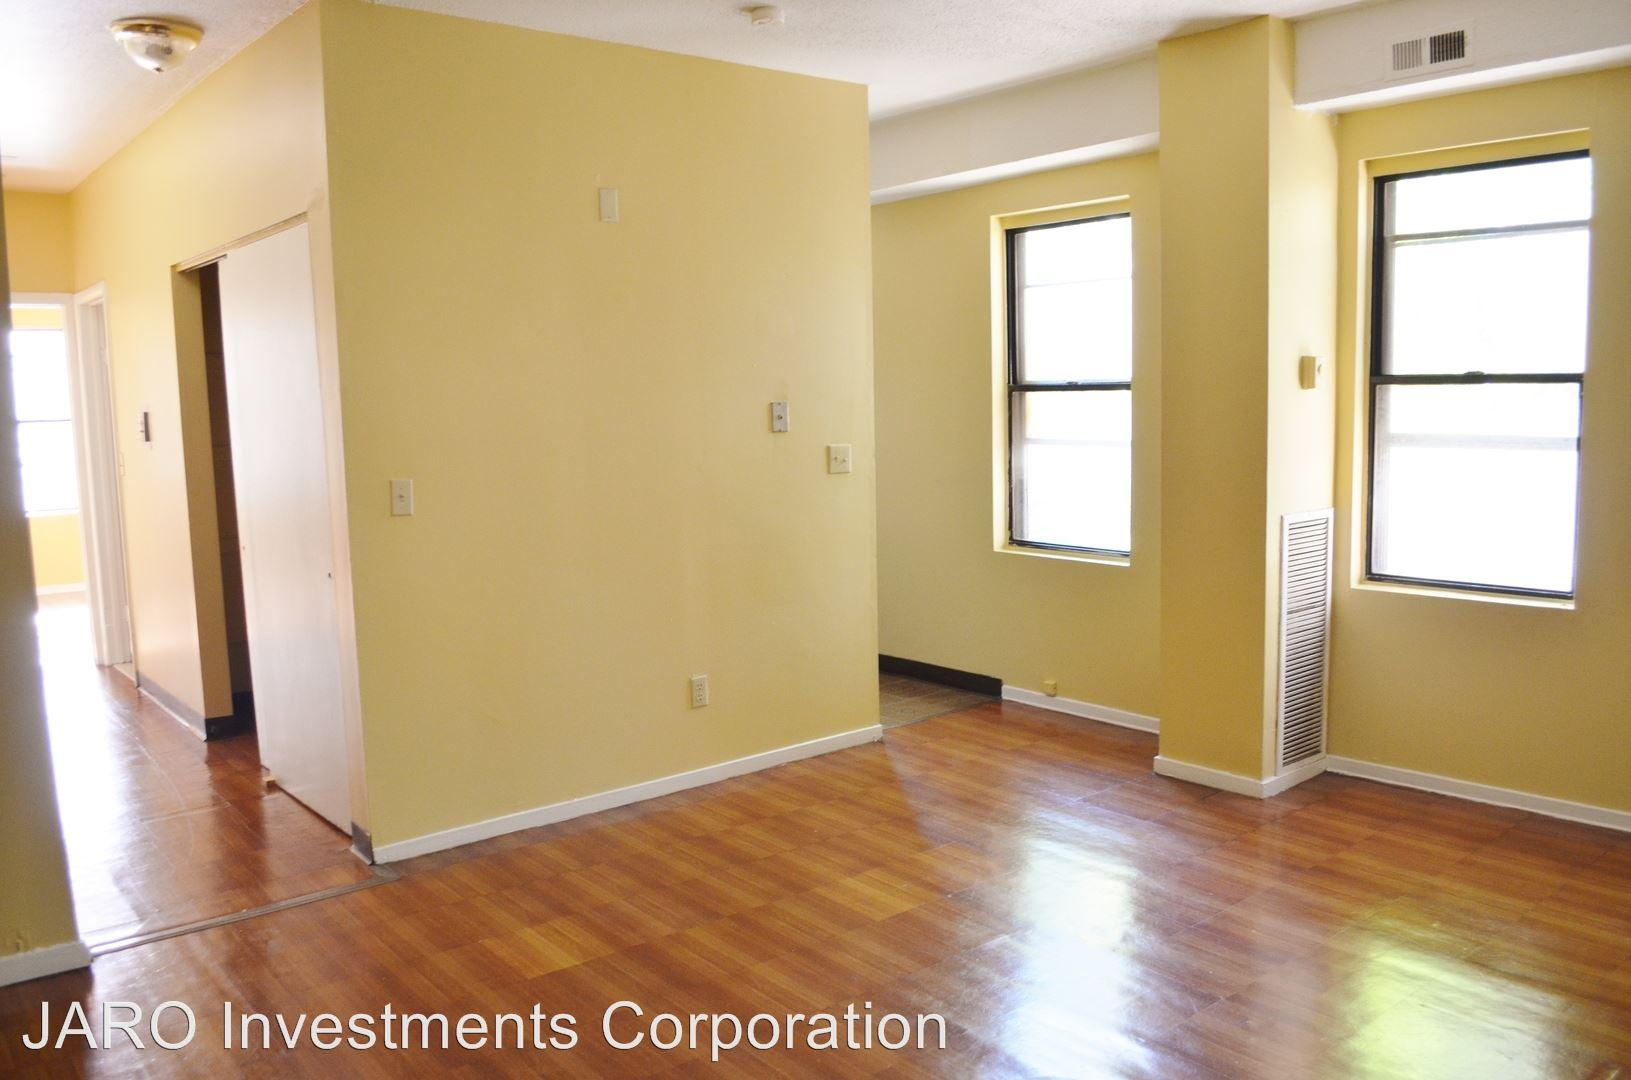 77-79 Green St Apartments - Cozy One Bedroom Apartment - *Security deposit depends on credit history*